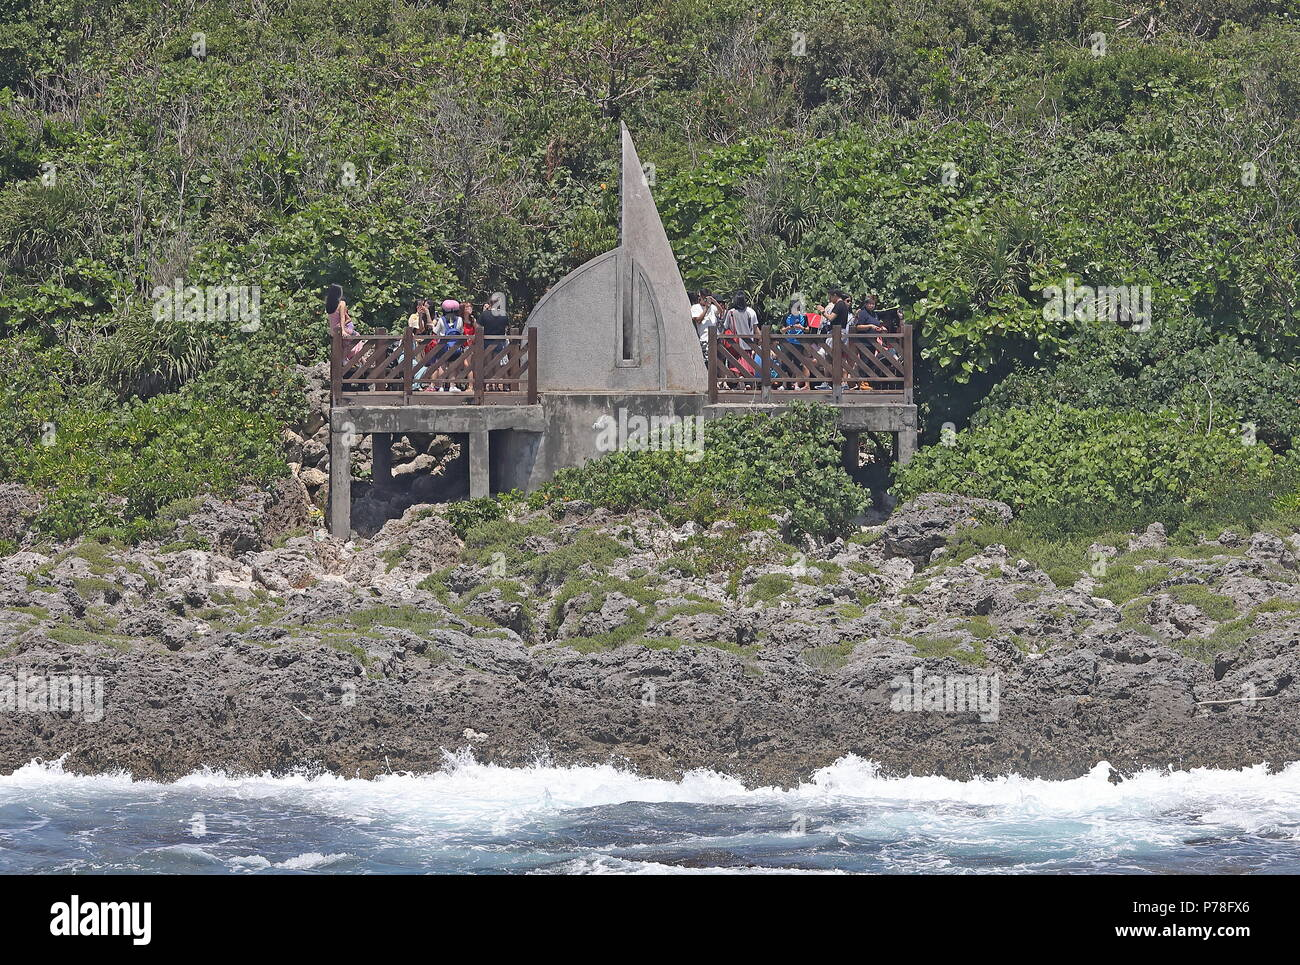 Tourists on watchpoint at most southerly end of the island  Taiwan                 April - Stock Image